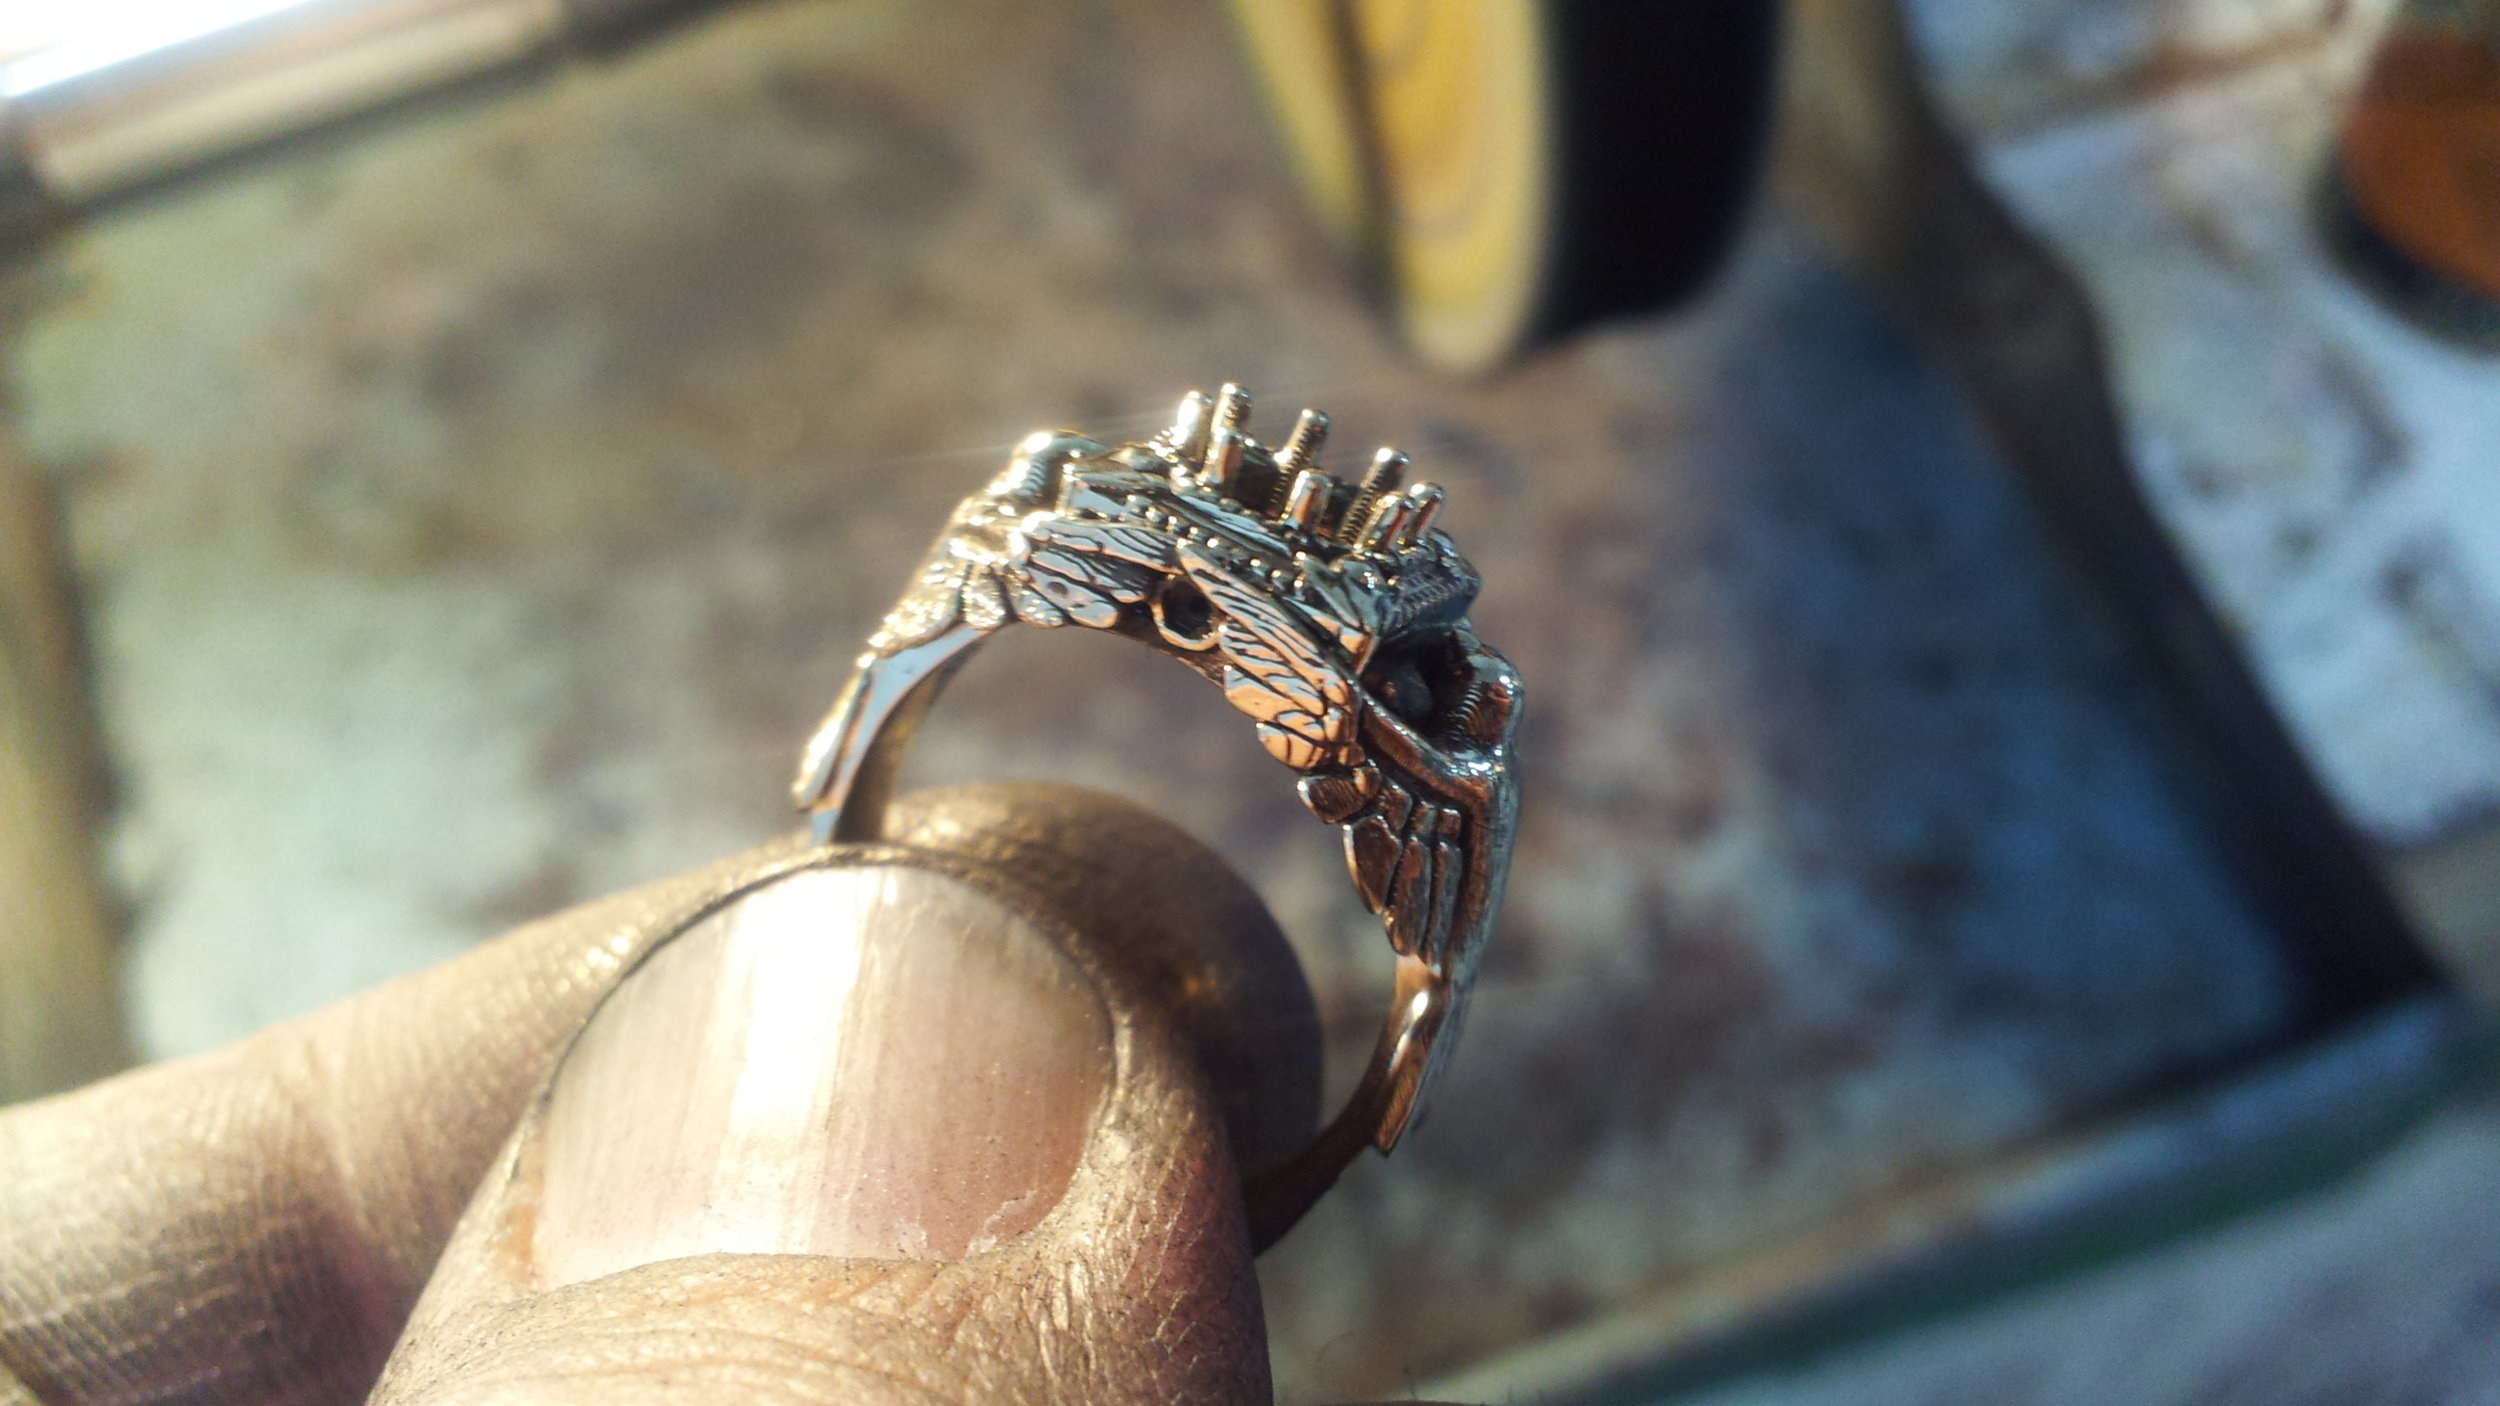 One of the first rings we 3D printed. It was a new technology in those days (waaay back in 2013). You can see the rudimentary build lines in the piece that we kept to emulate the feathers and organic style of this ring that was eventually set with a yellow sapphire. Resolution today rivals that of machining.